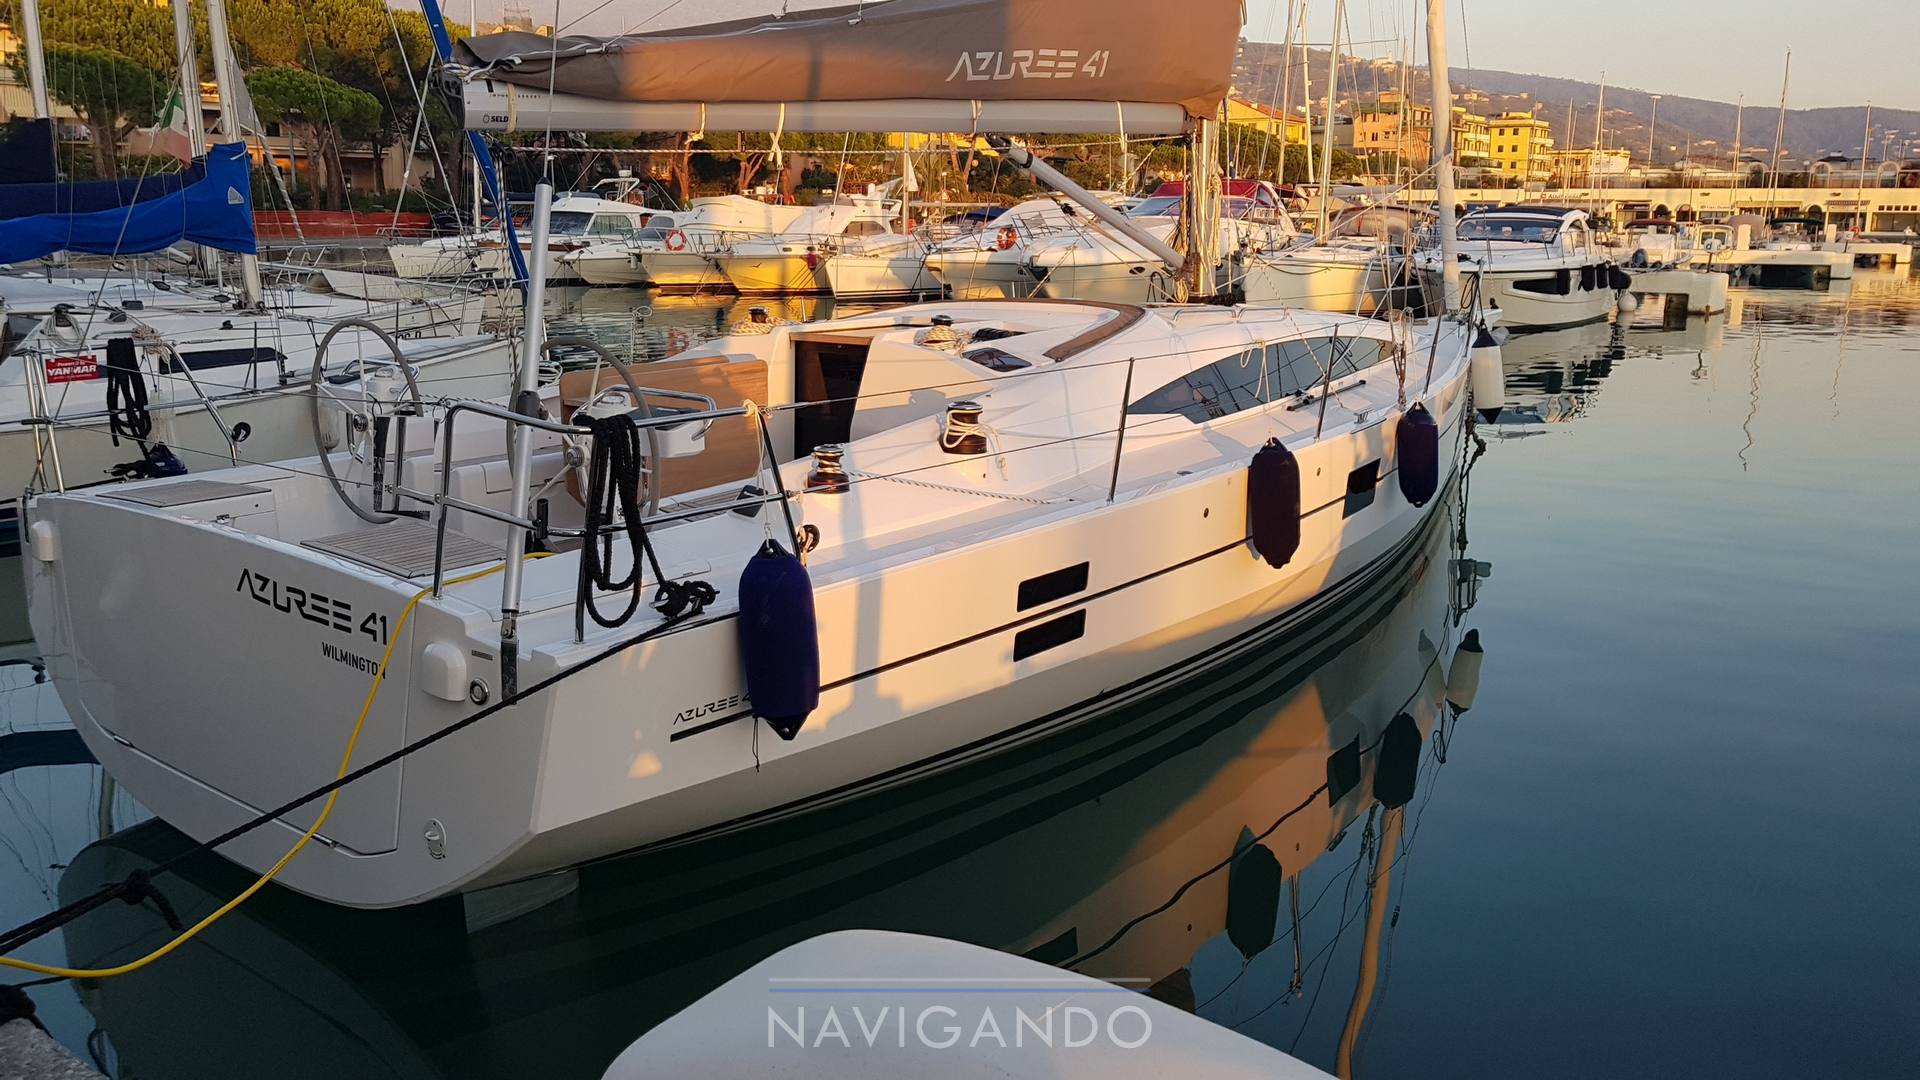 Azurre 41 Sailing boat used for sale